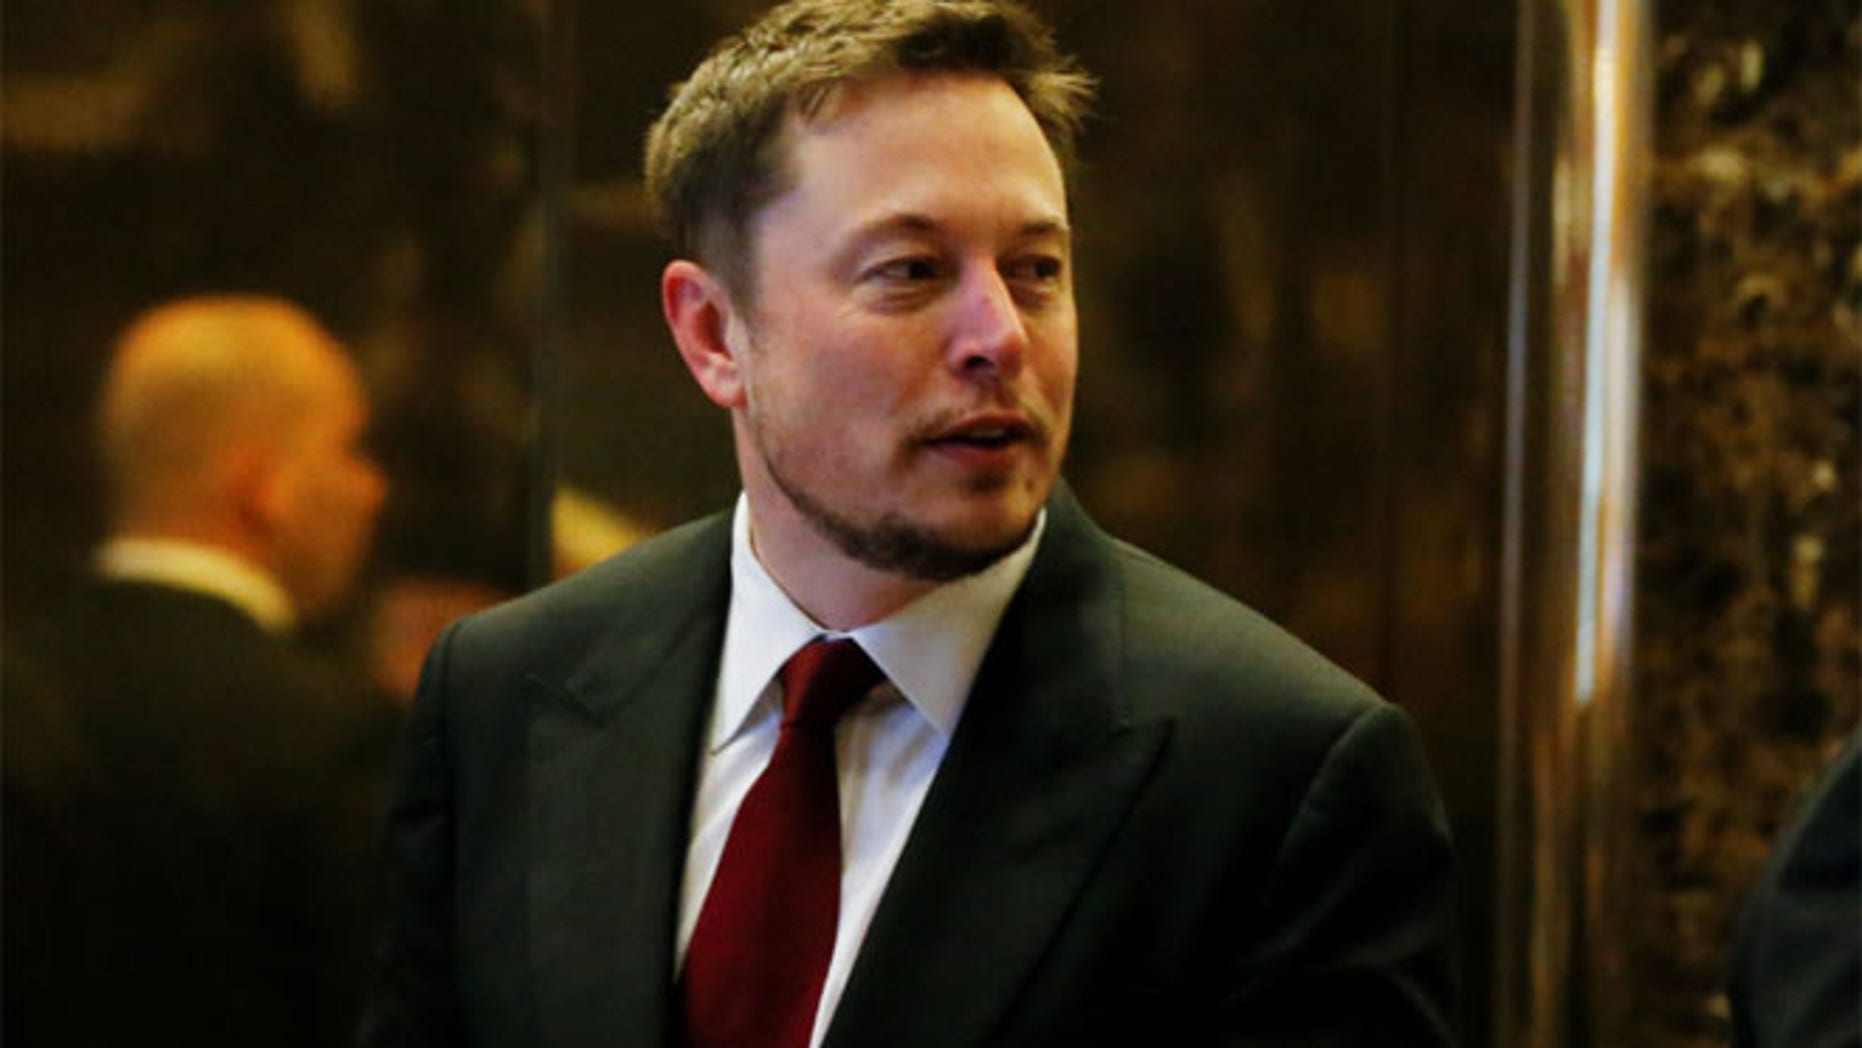 FILE 2017: Elon Musk responded to reports that Tesla employees may be considering unionizing